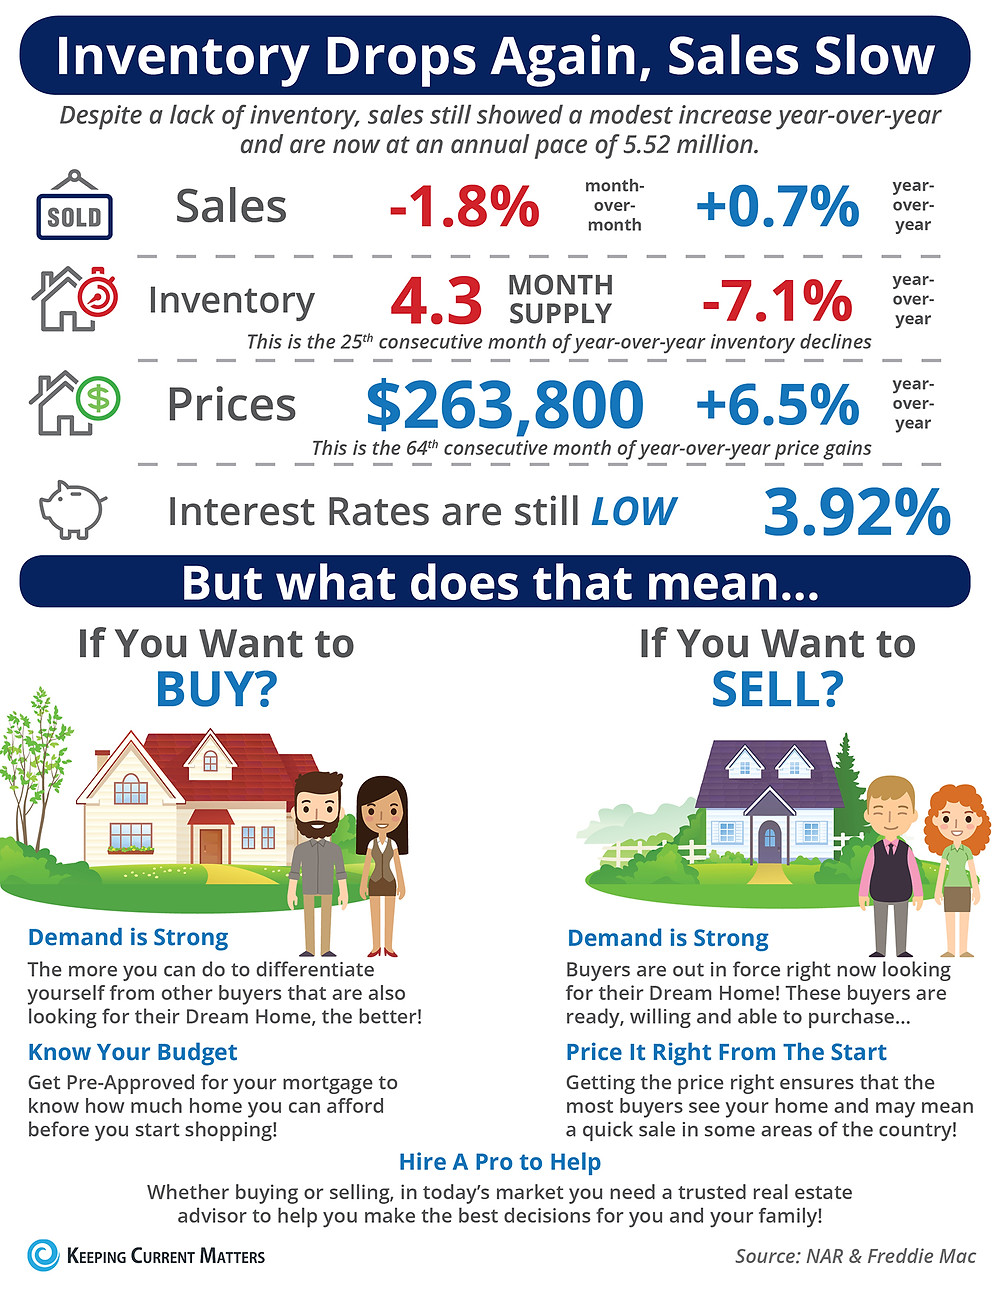 Inventory Drops Again, Sales Slow [INFOGRAPHIC] | Keeping Current Matters